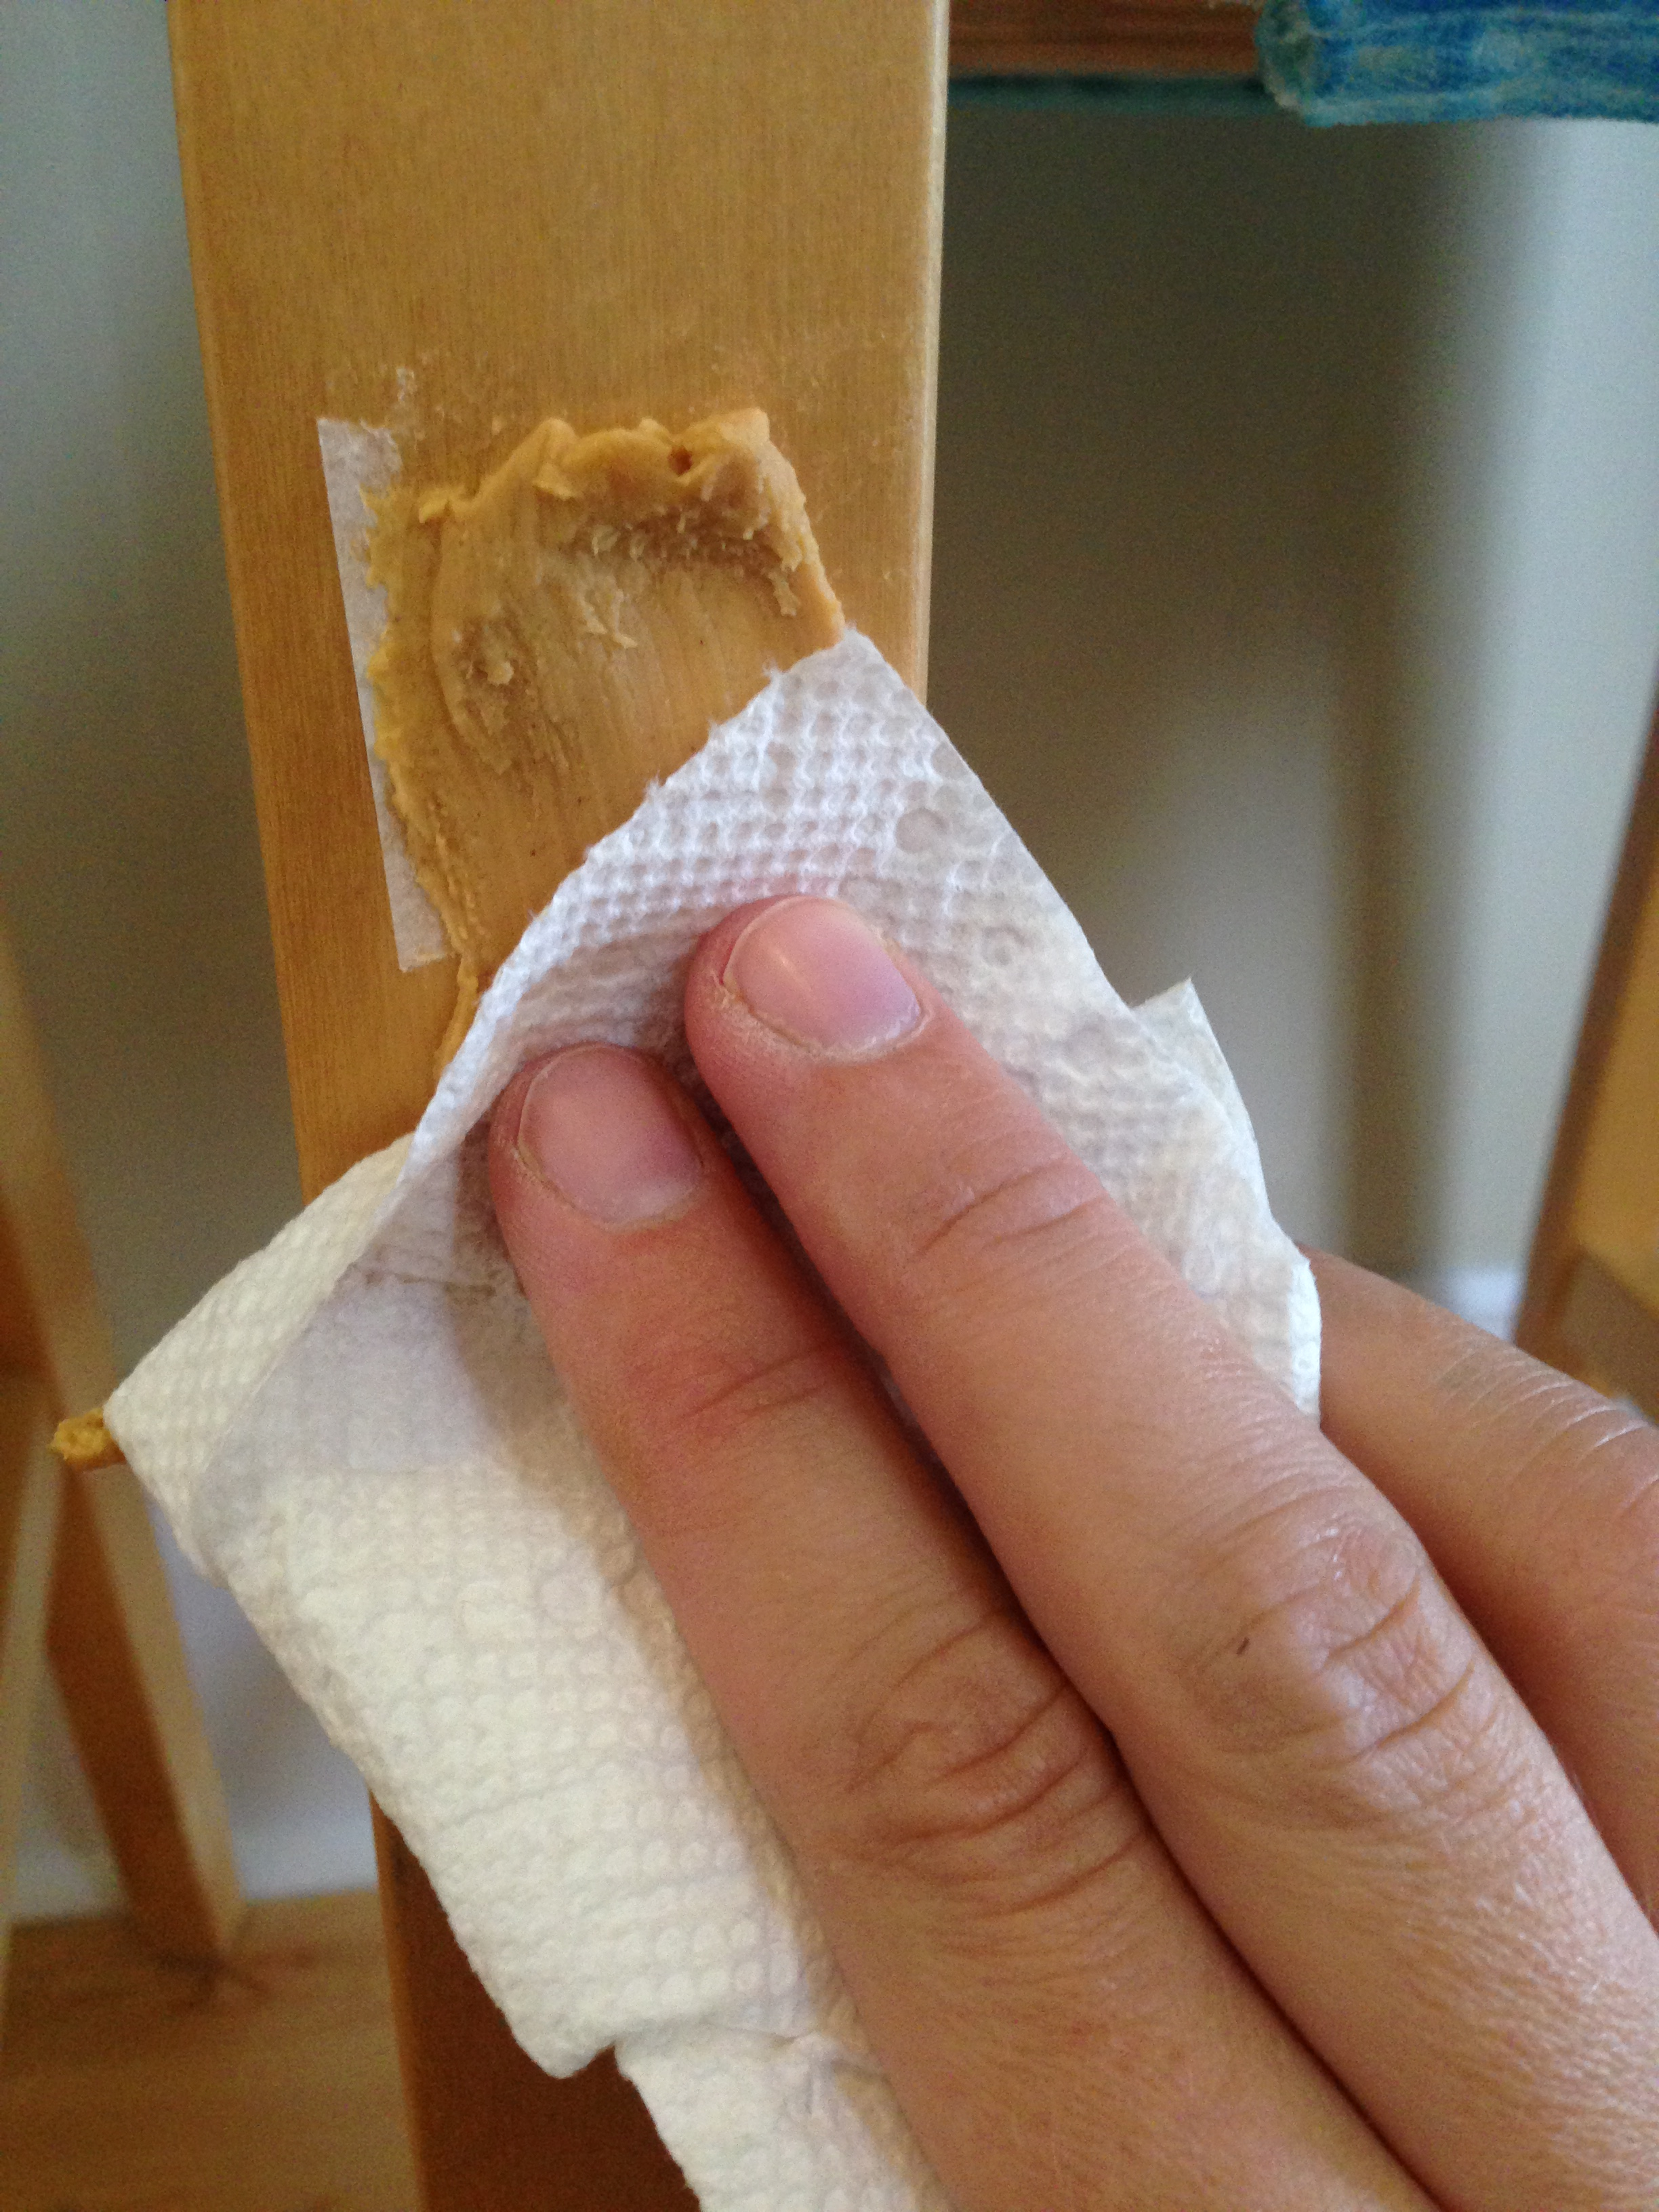 Removing sticker residue with peanut butter